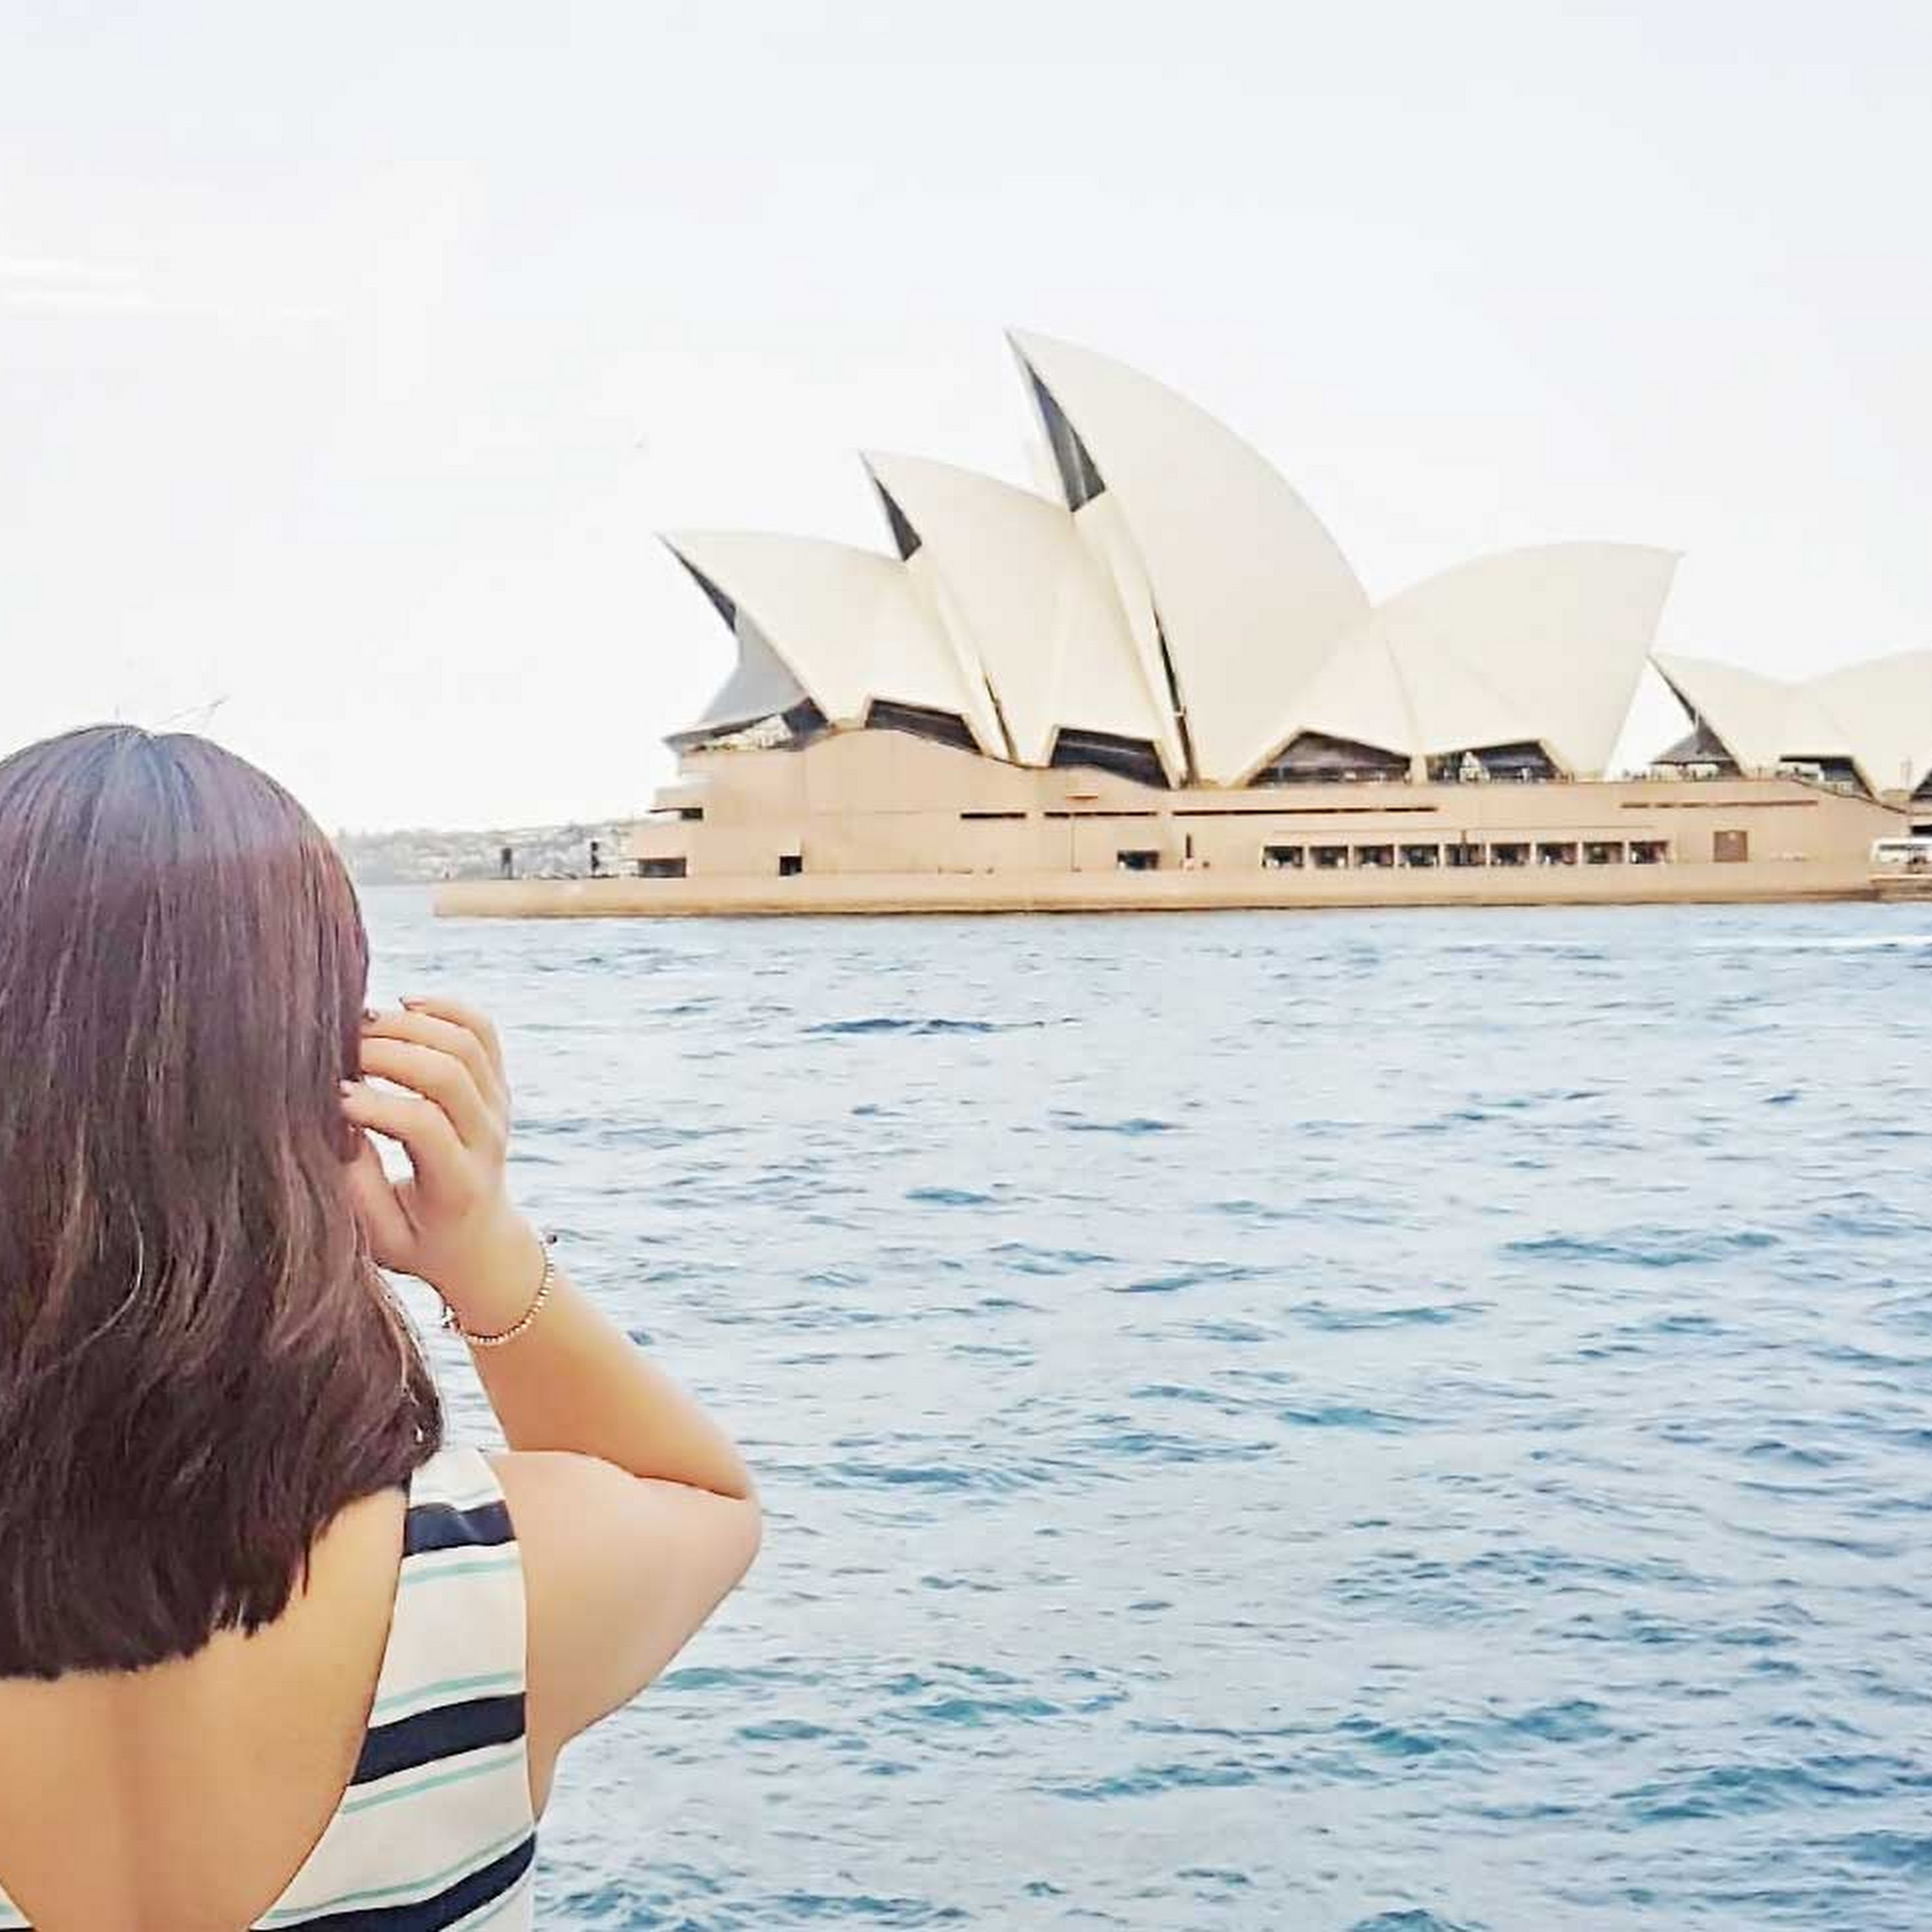 WHAT YOU CAN EAT AND DO IN SYDNEY